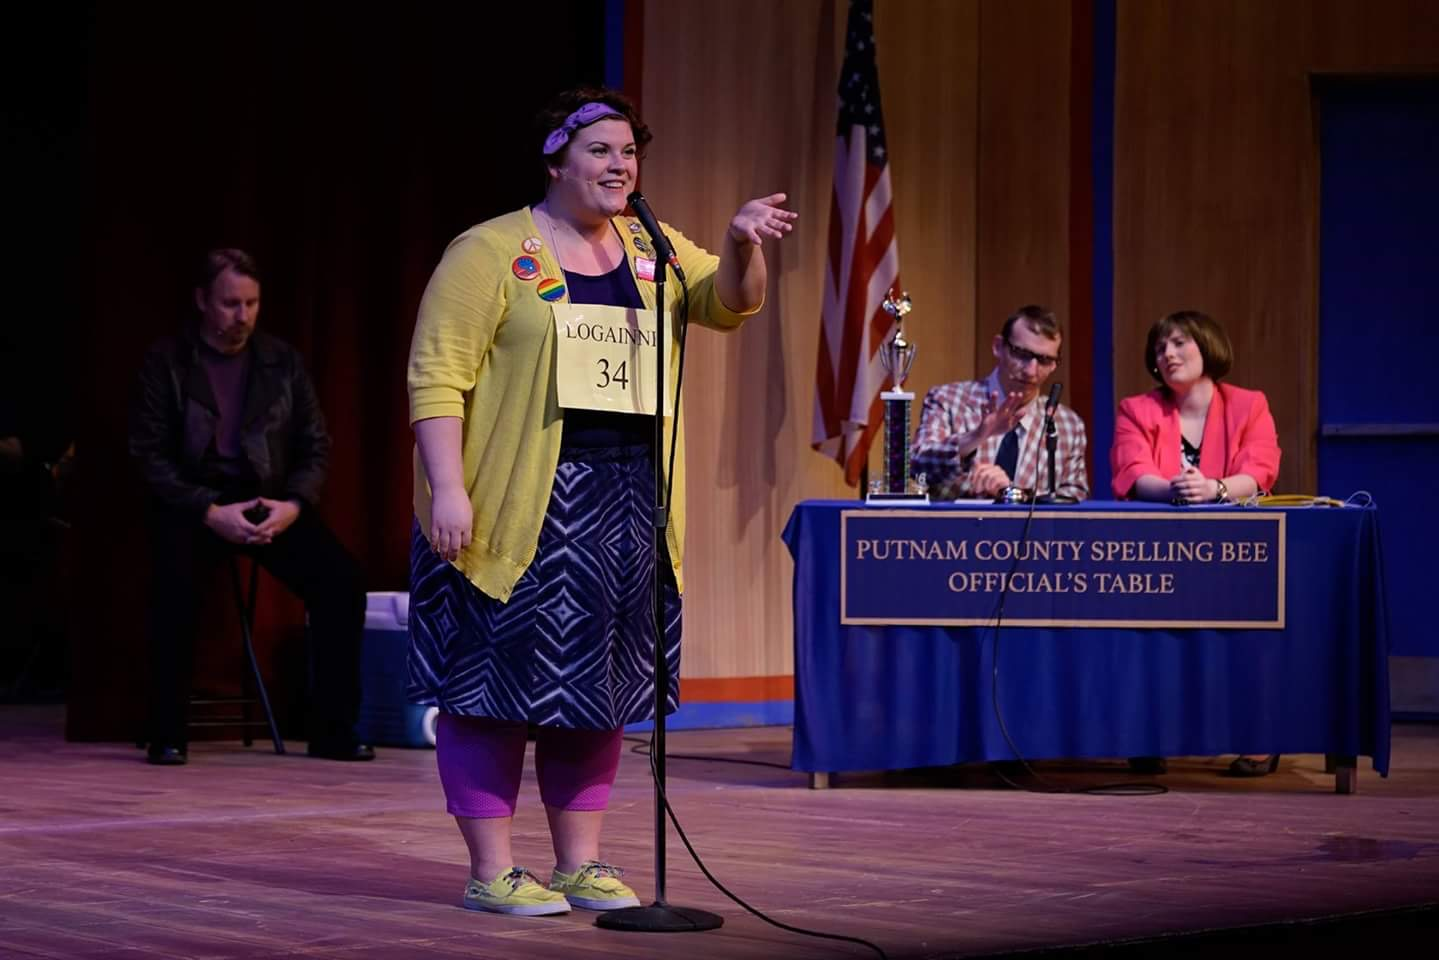 UWO graduation speaker Griffyn Albers acts in a spelling bee during a theatre performance.